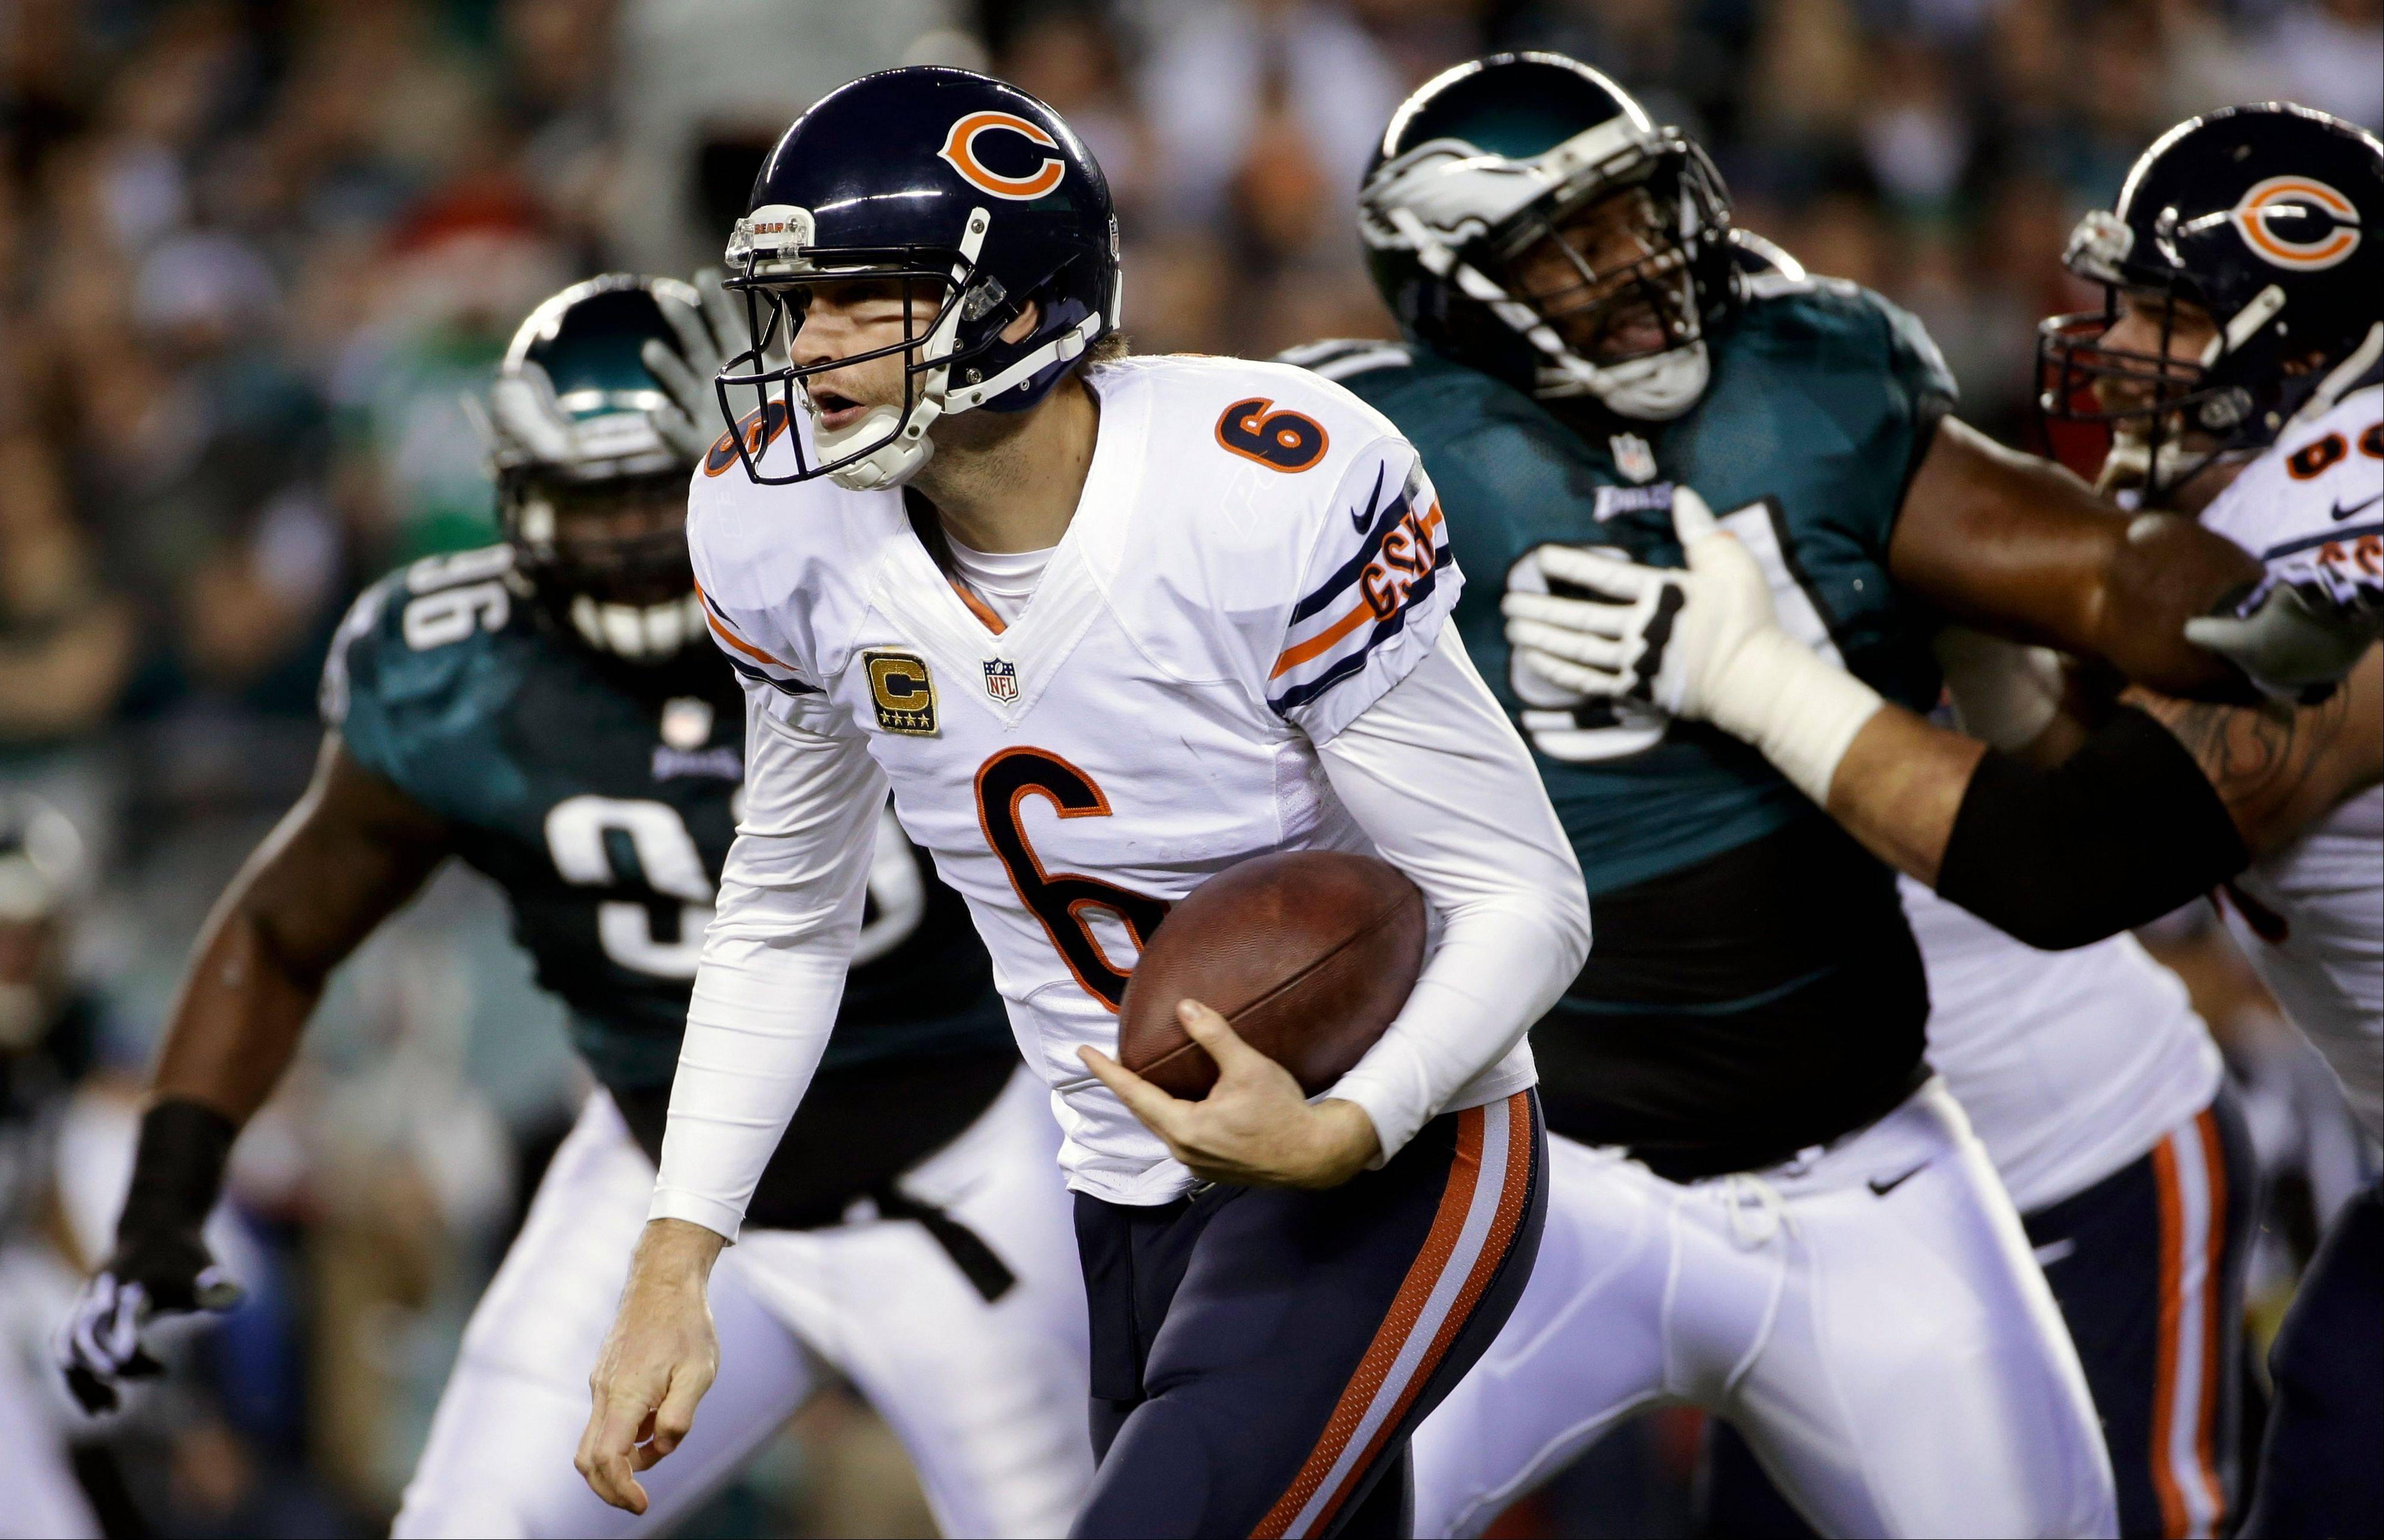 Quarterback Jay Cutler and the Bears look to scramble their way into the playoffs with a victory Sunday over the Green Bay Packers.